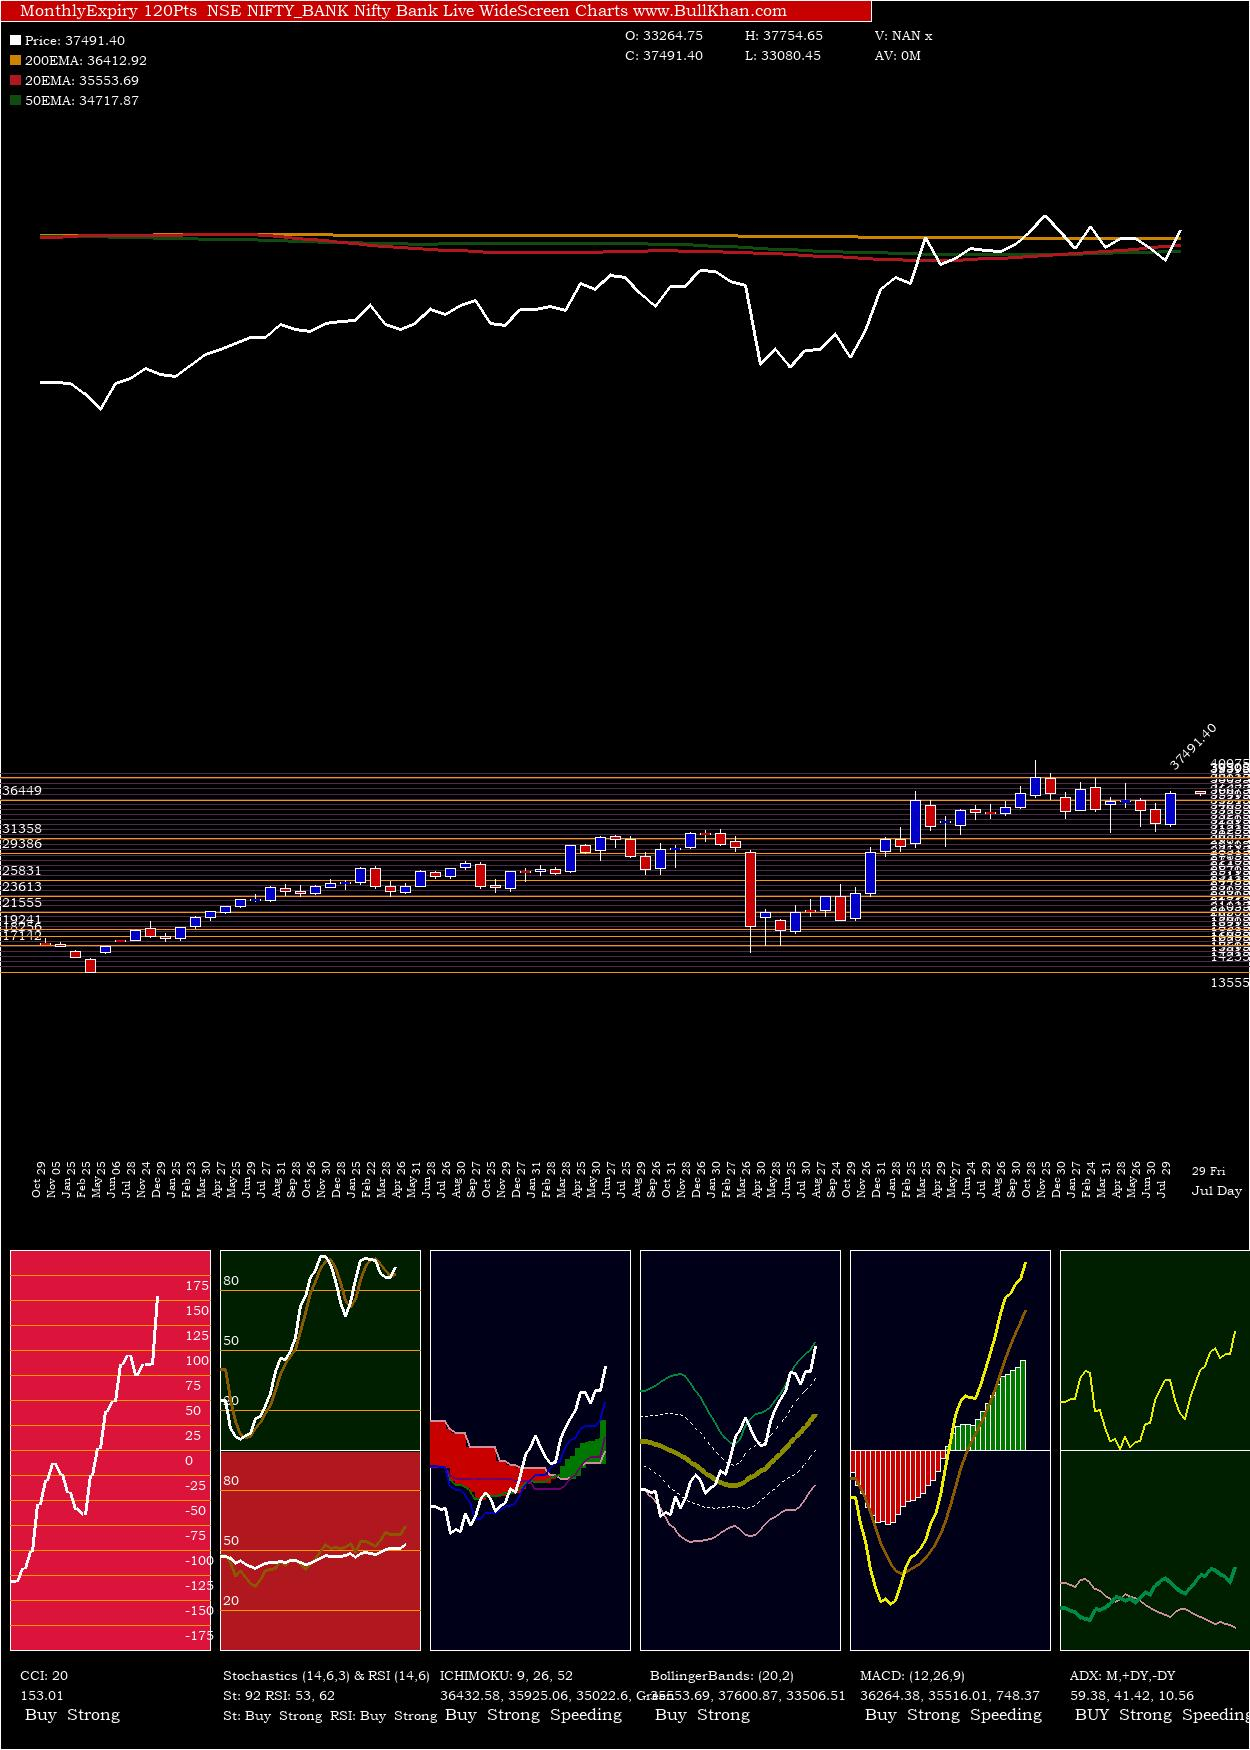 Nifty Bank Monthly  expiry NIFTY_BANK Expiry to Expiry Candle Stick Charts